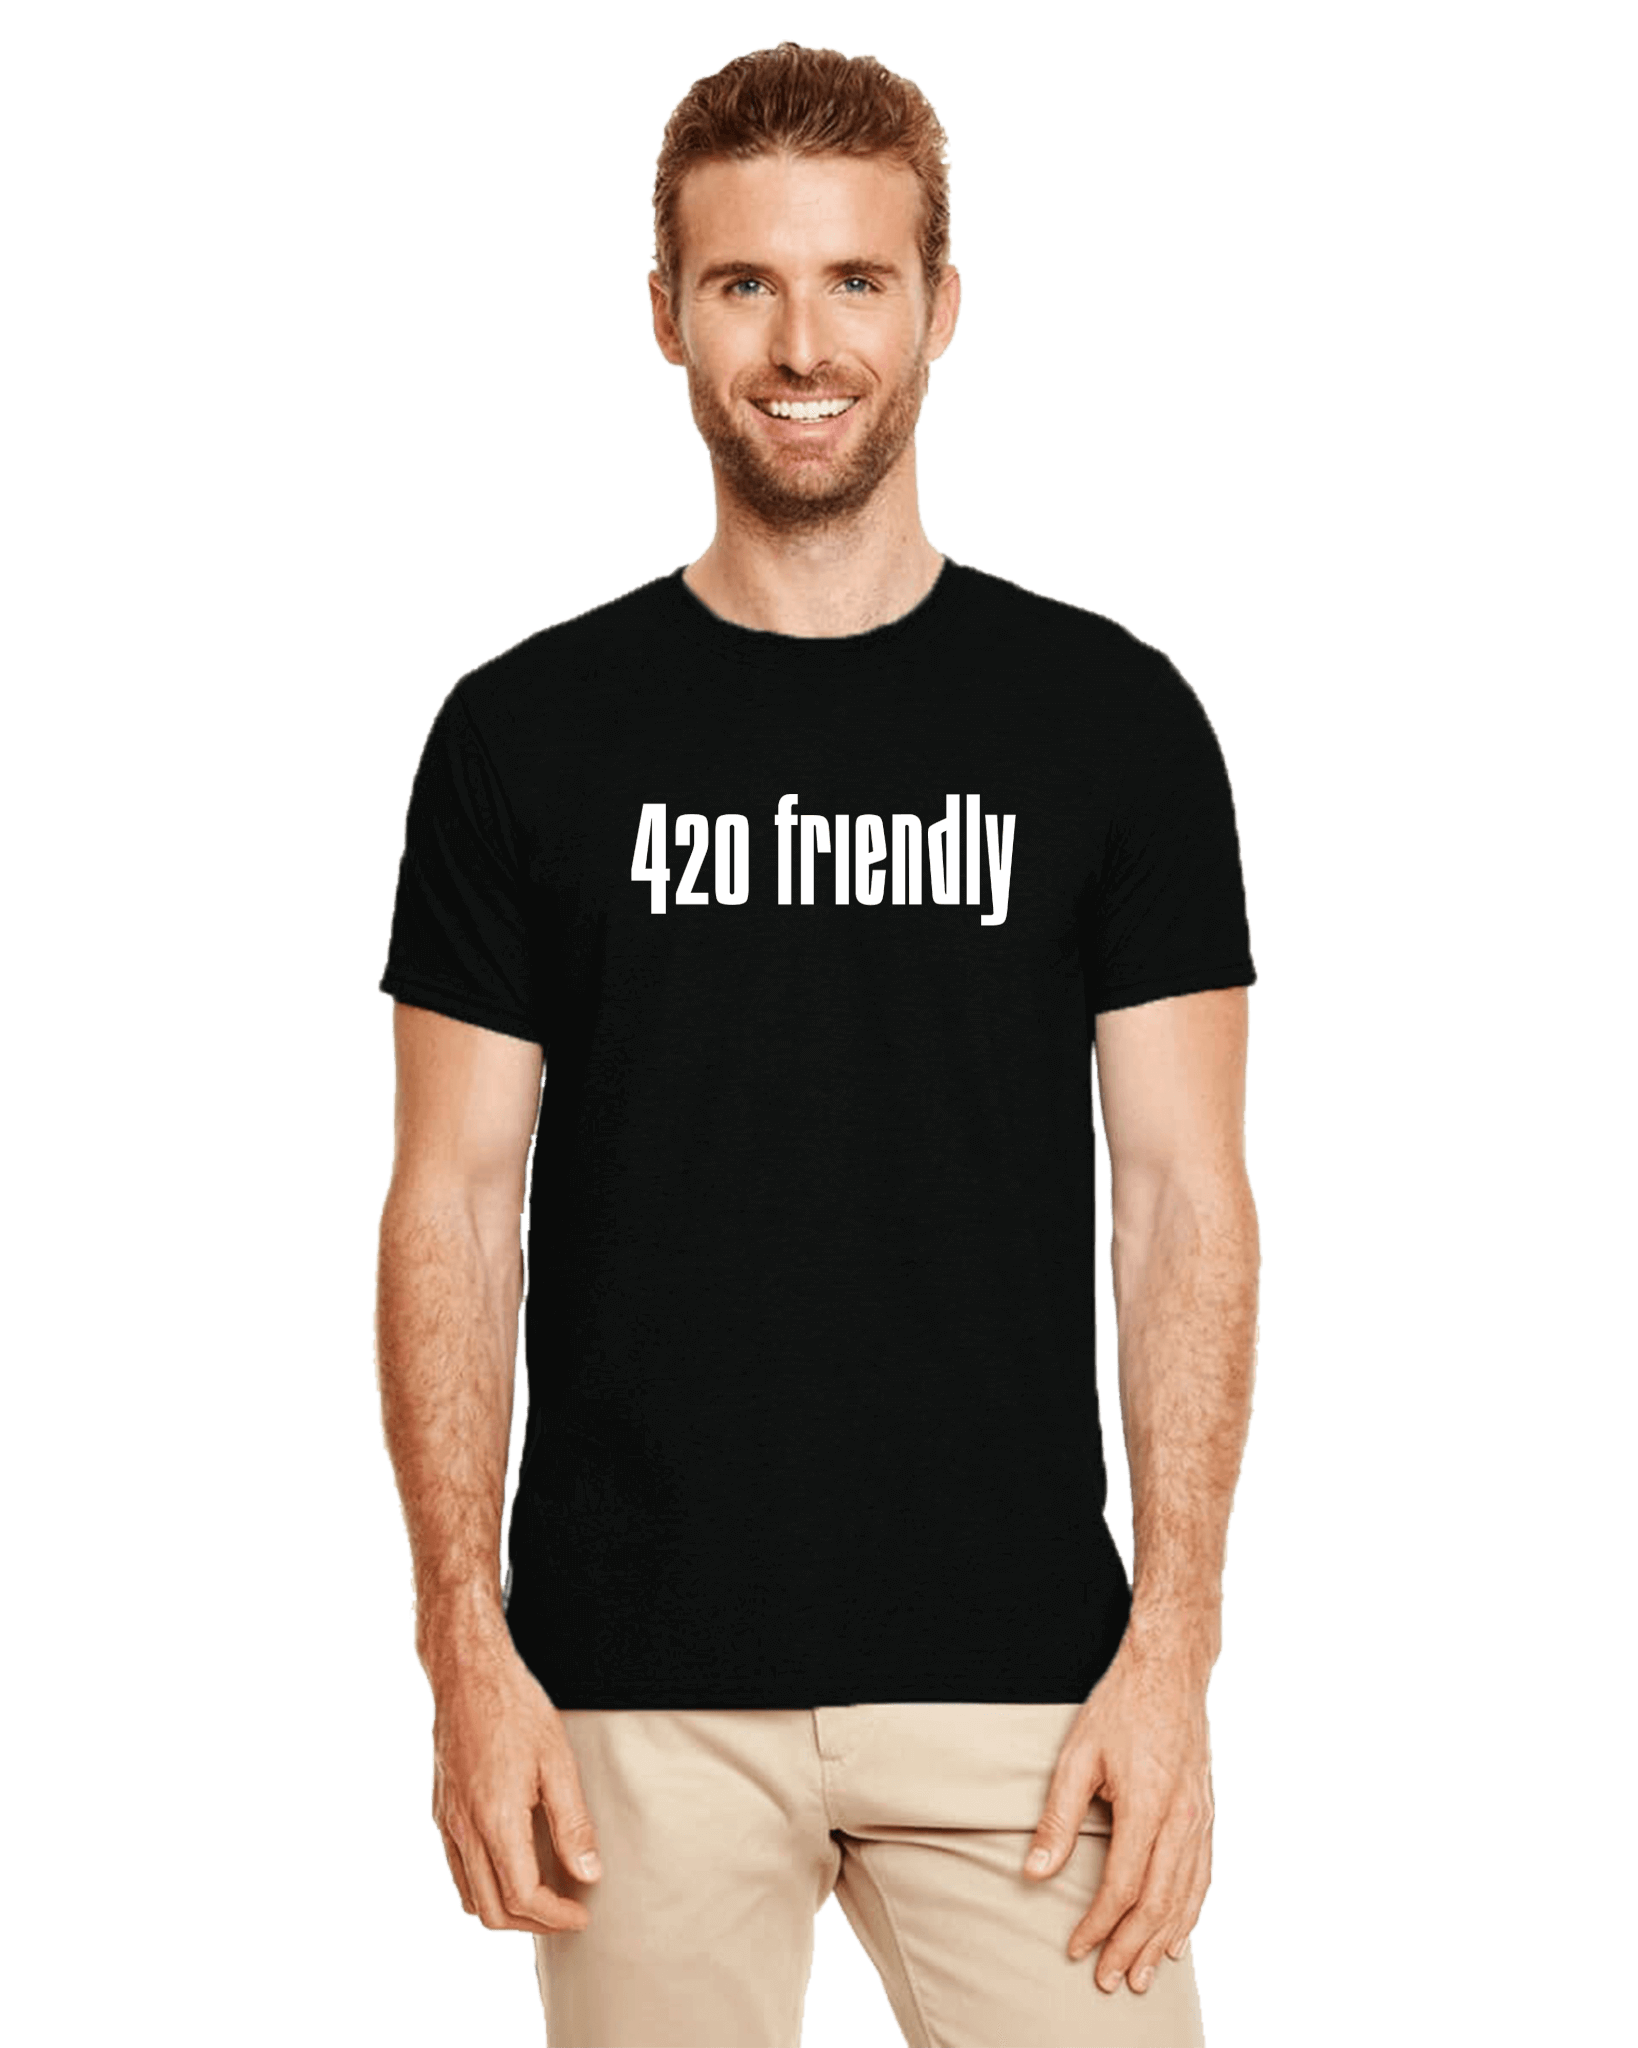 420 friendly 420 t-shirt black